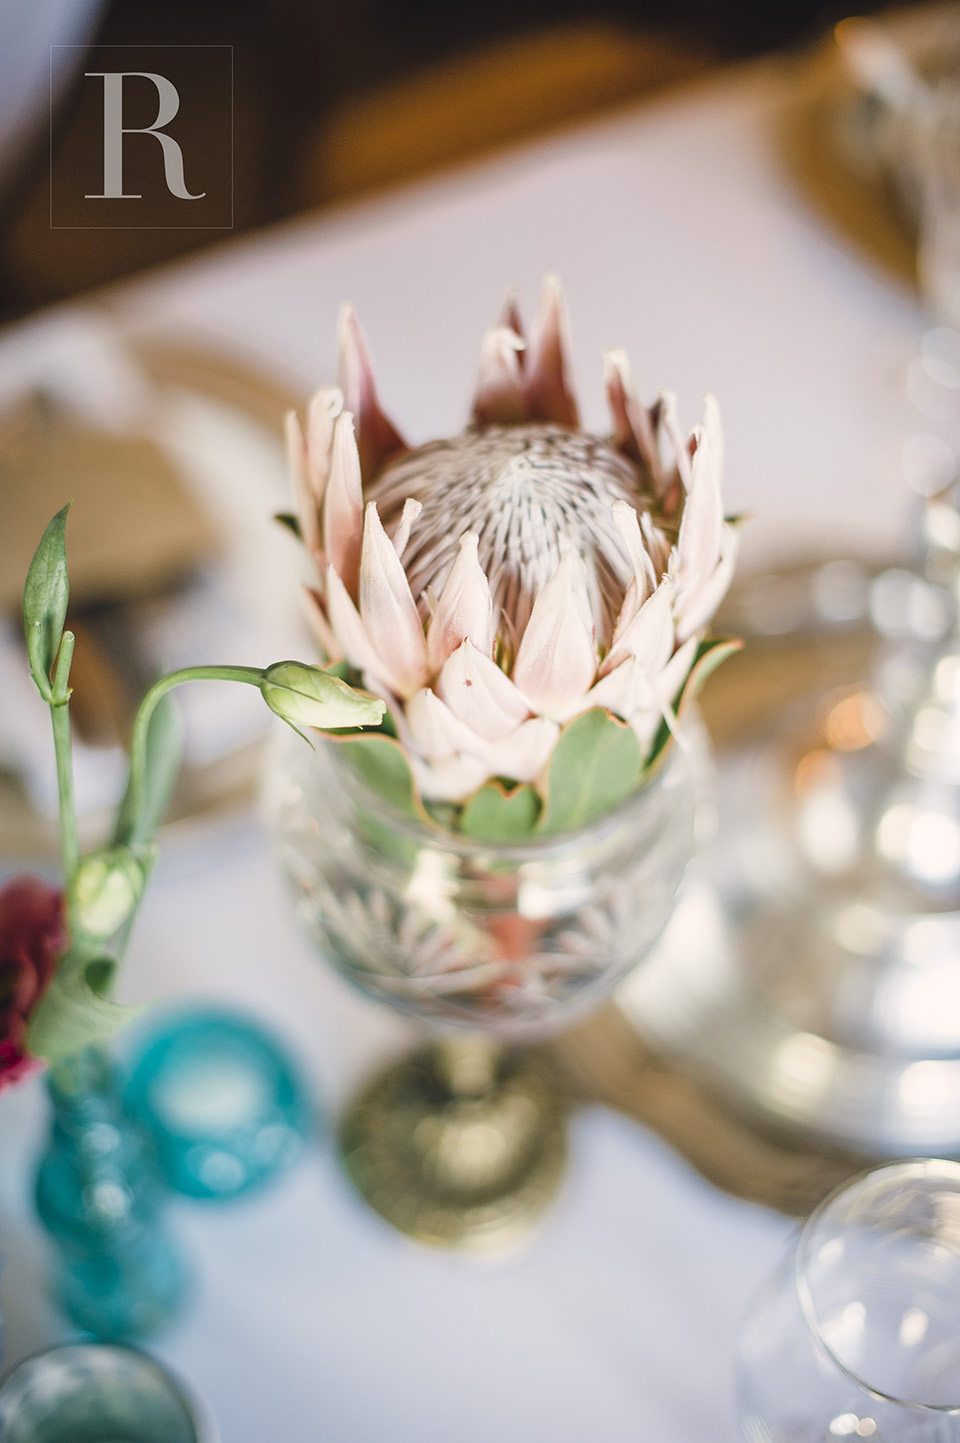 RYAN PARKER PHOTOGRAPHY_WEDDINGS_JOHANNESBURG_MORRELLS_M&M DSC_2416.jpg